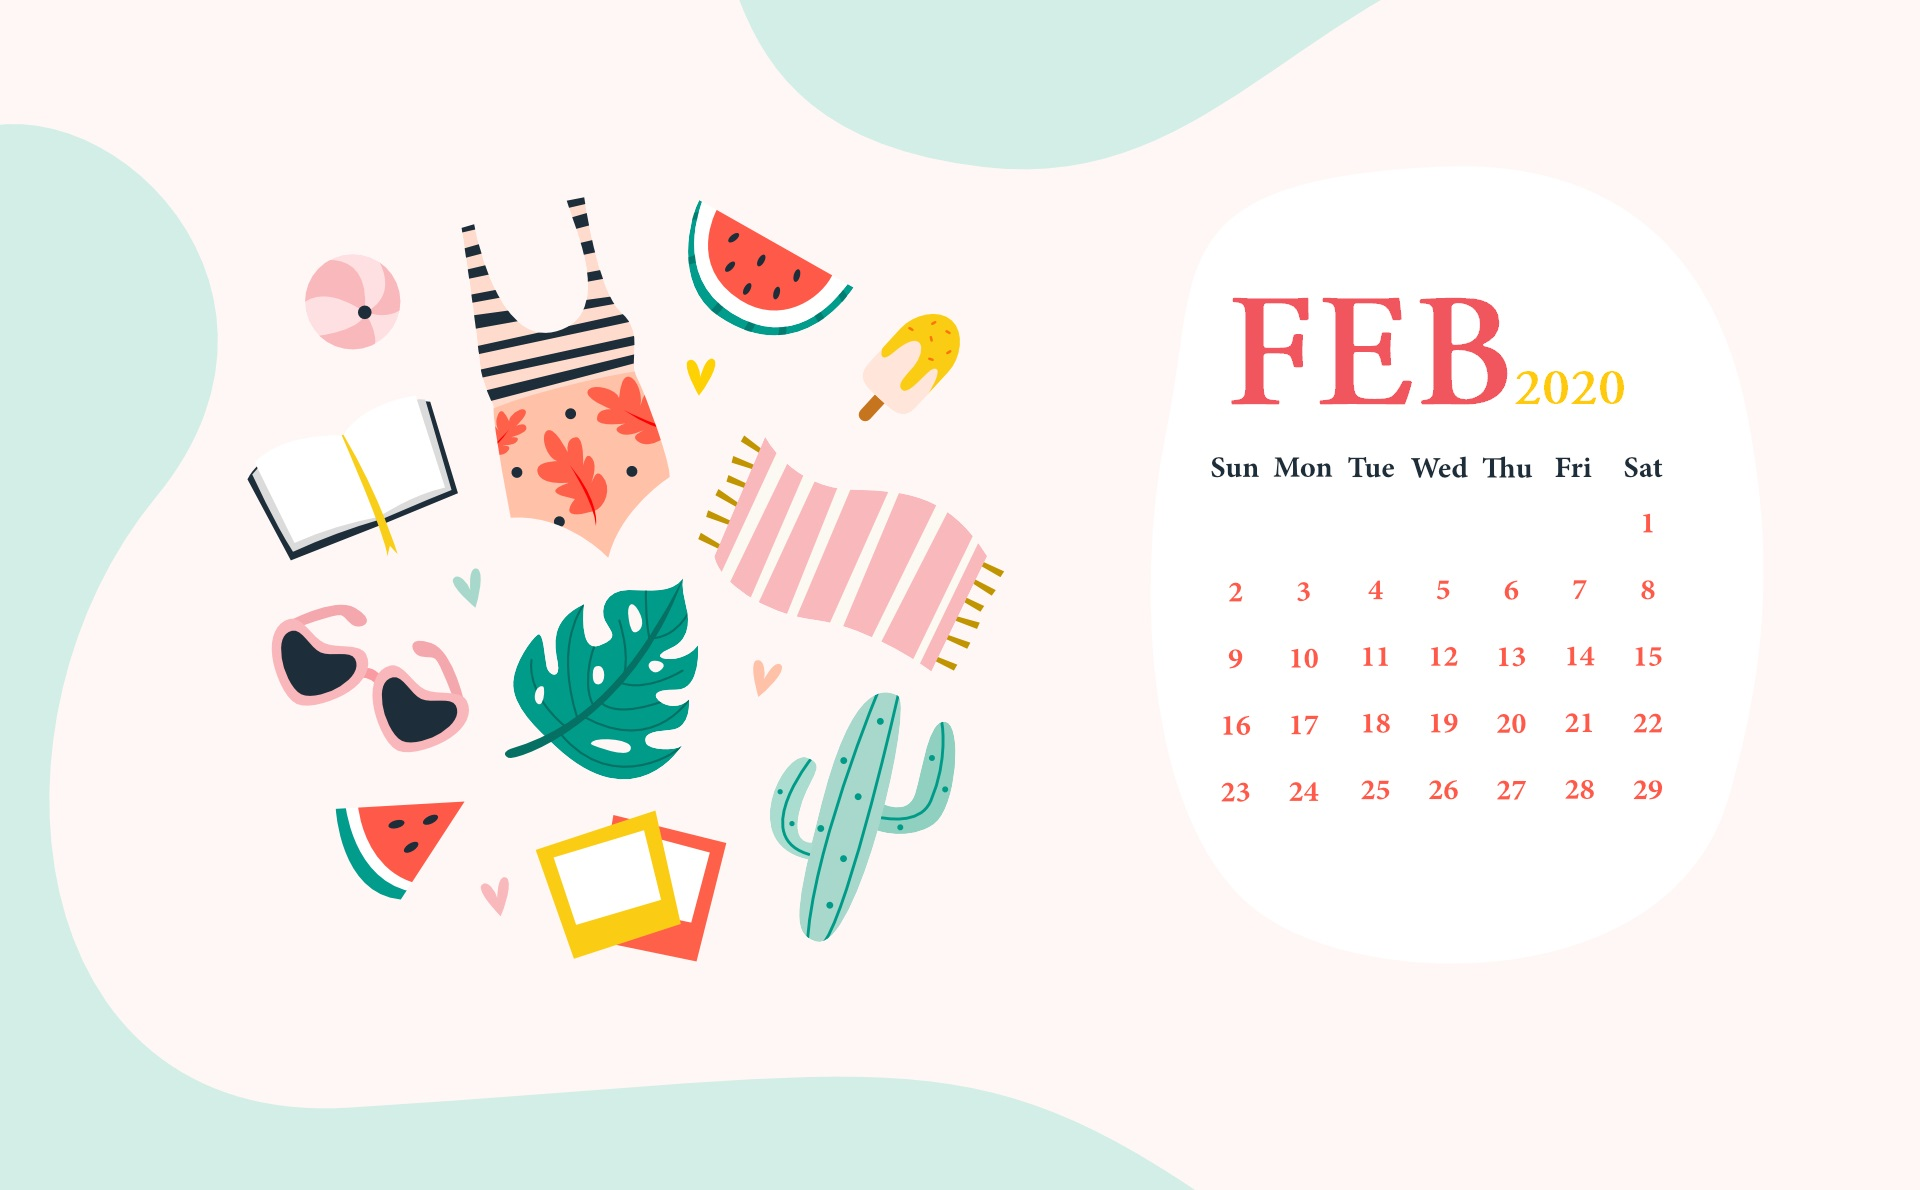 February 2020 Desktop Wallpaper Calendar Calendar 2019 1920x1190